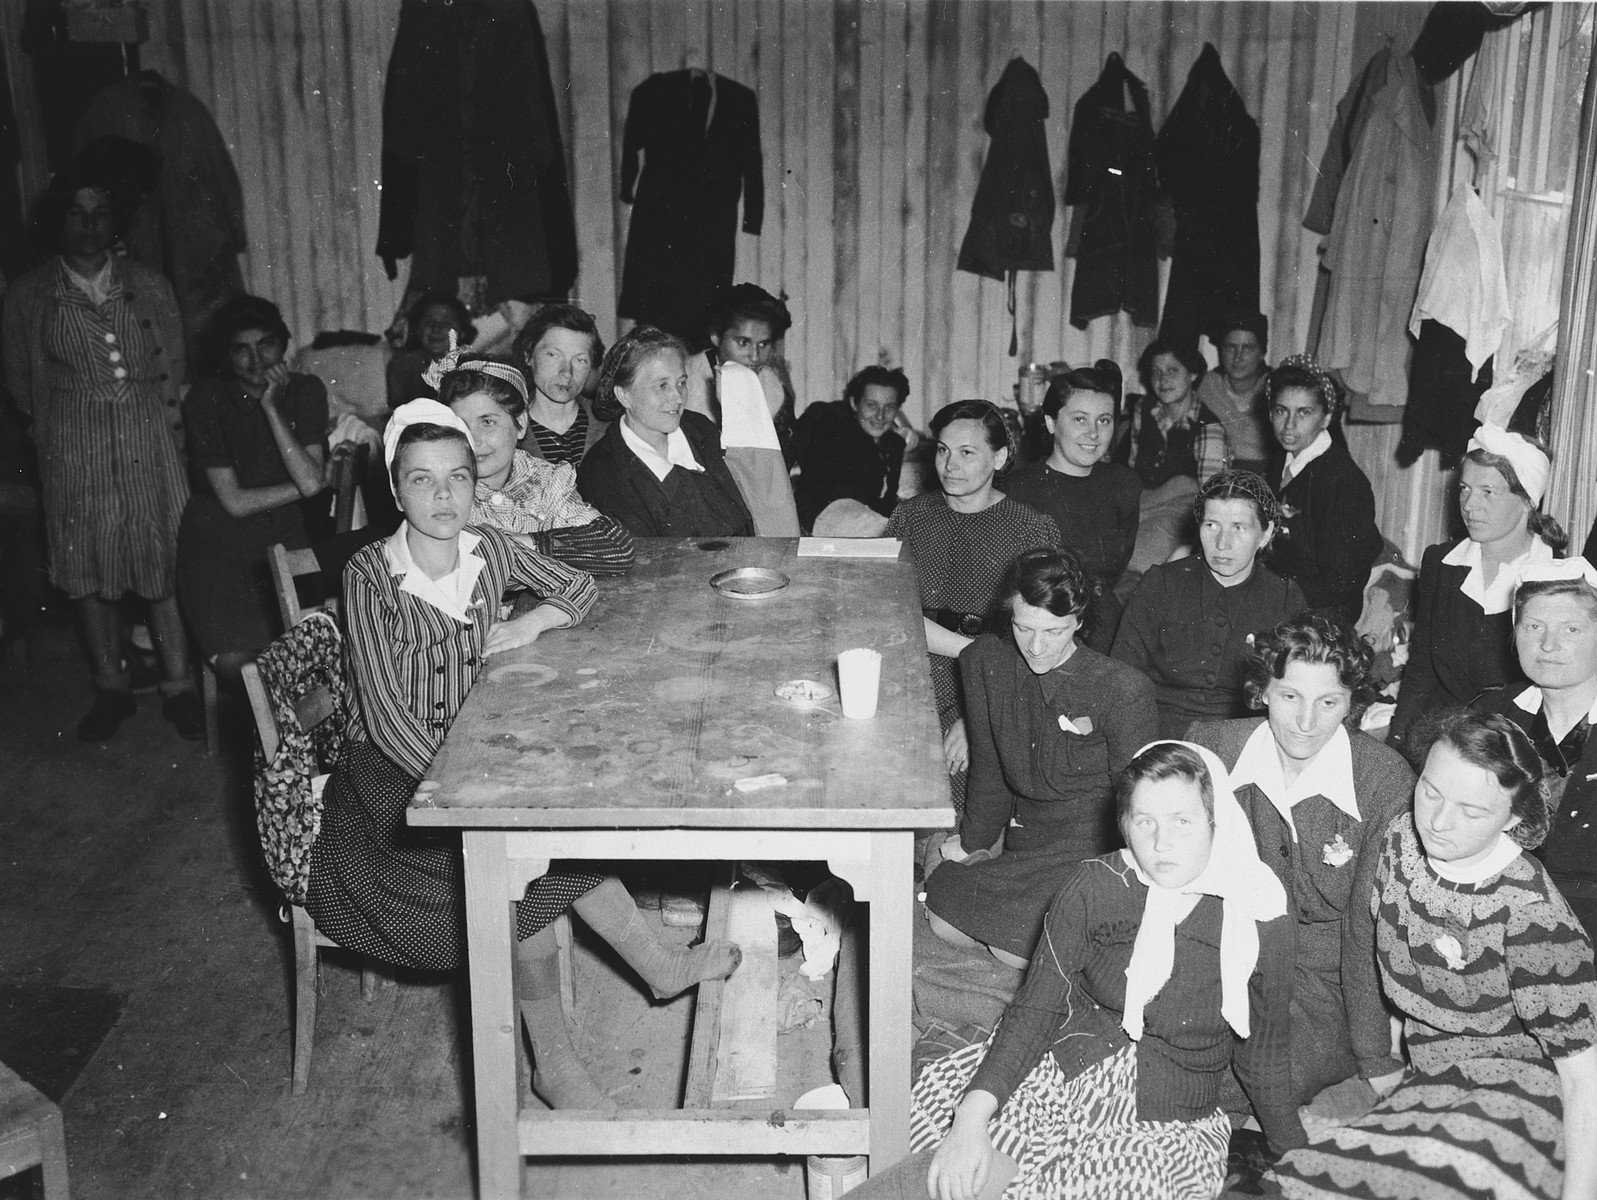 Female survivors gather by a table in a barrack of the Dachau concentration camp.